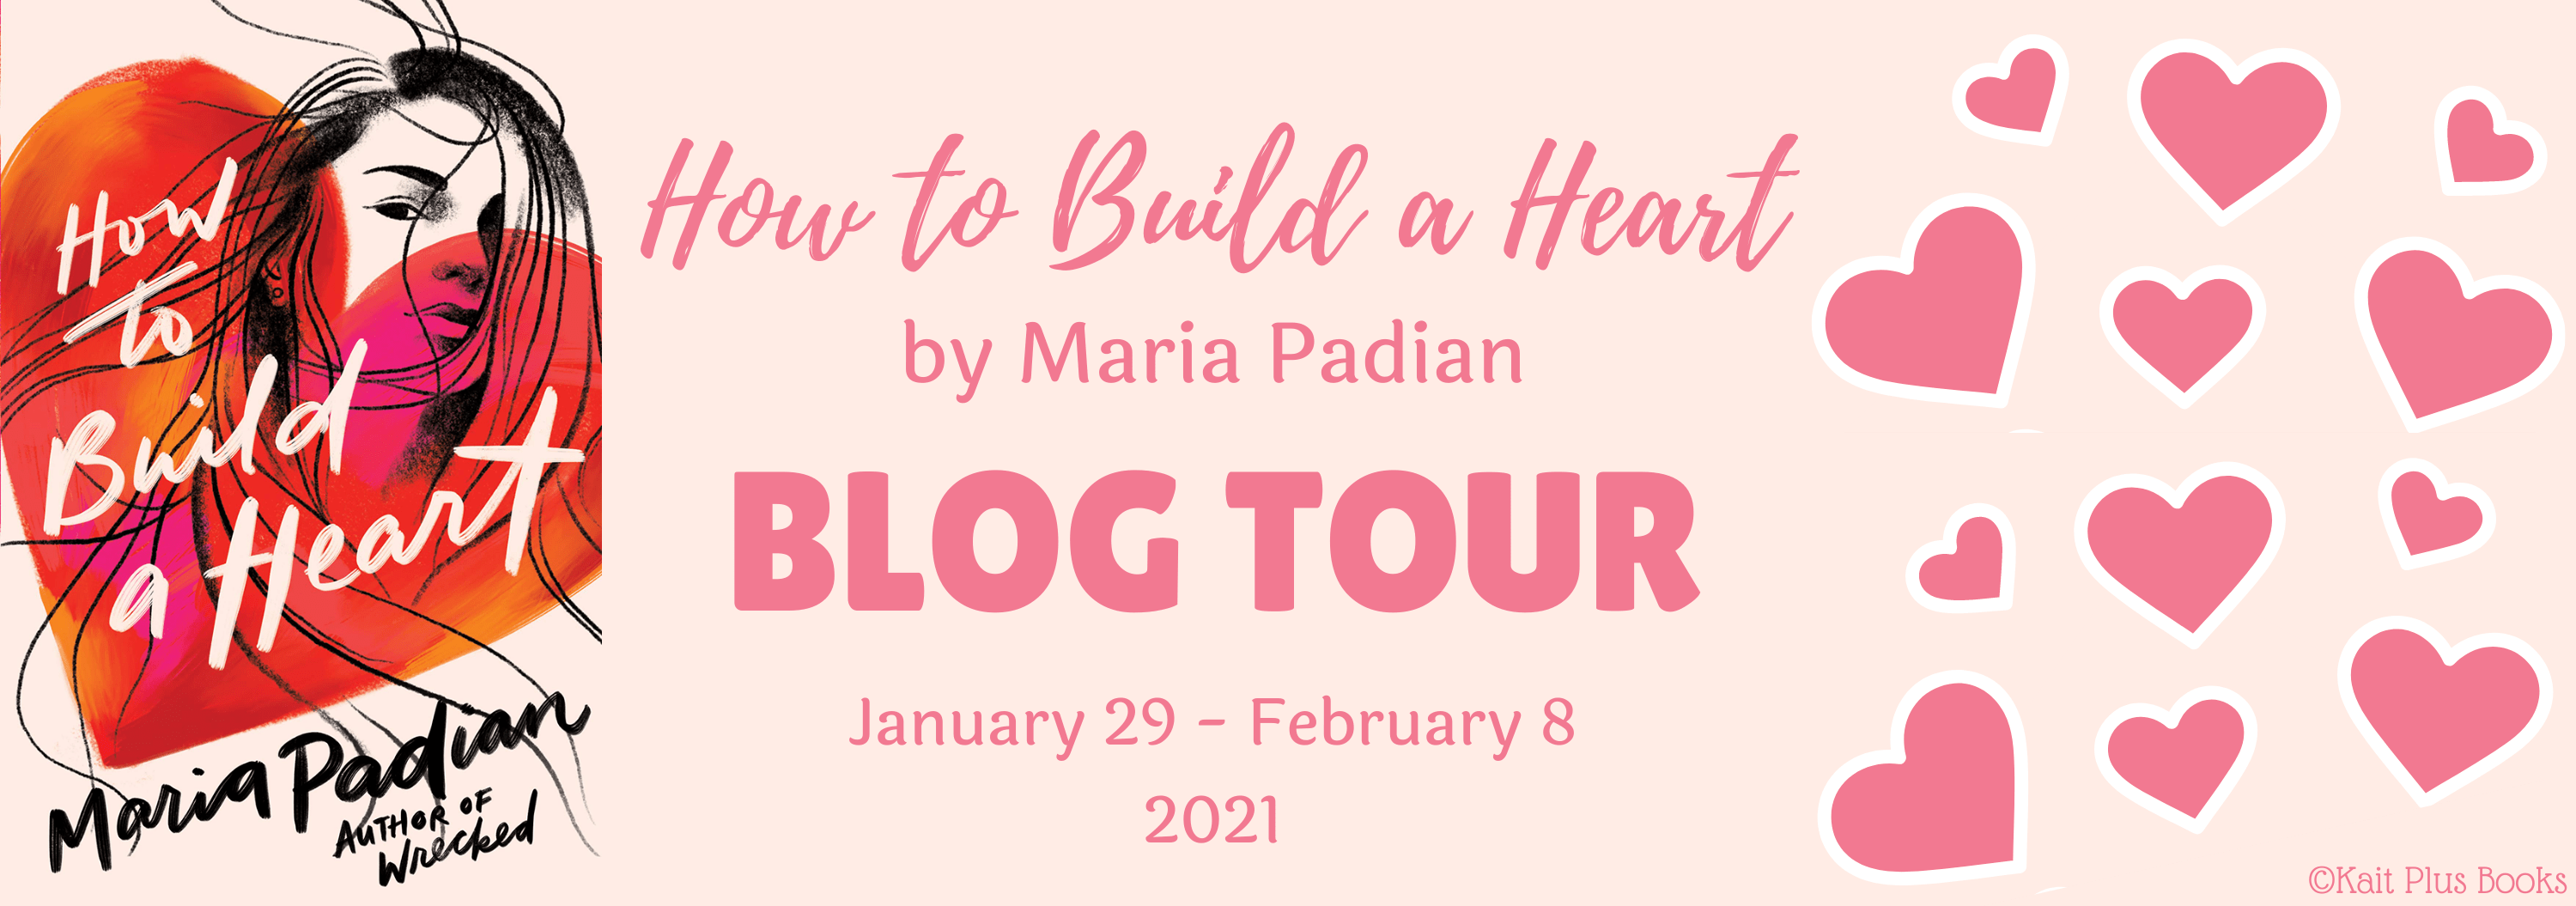 Blog Tour: How to Build a Heart by Maria Padian (Review + Bookstagram!)